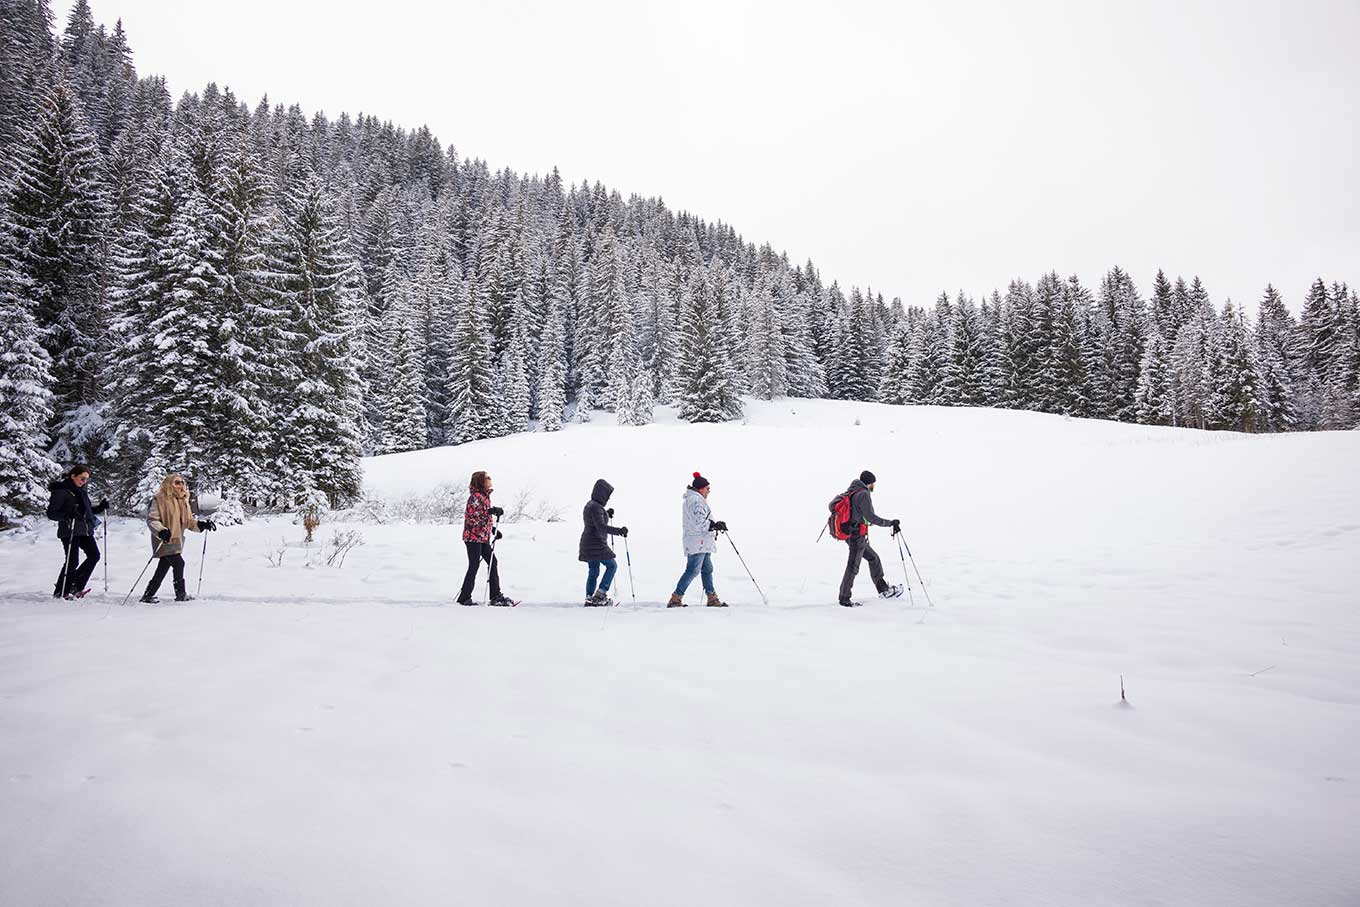 Group of snowshoe hikers crossing a powder field in the middle of the forest